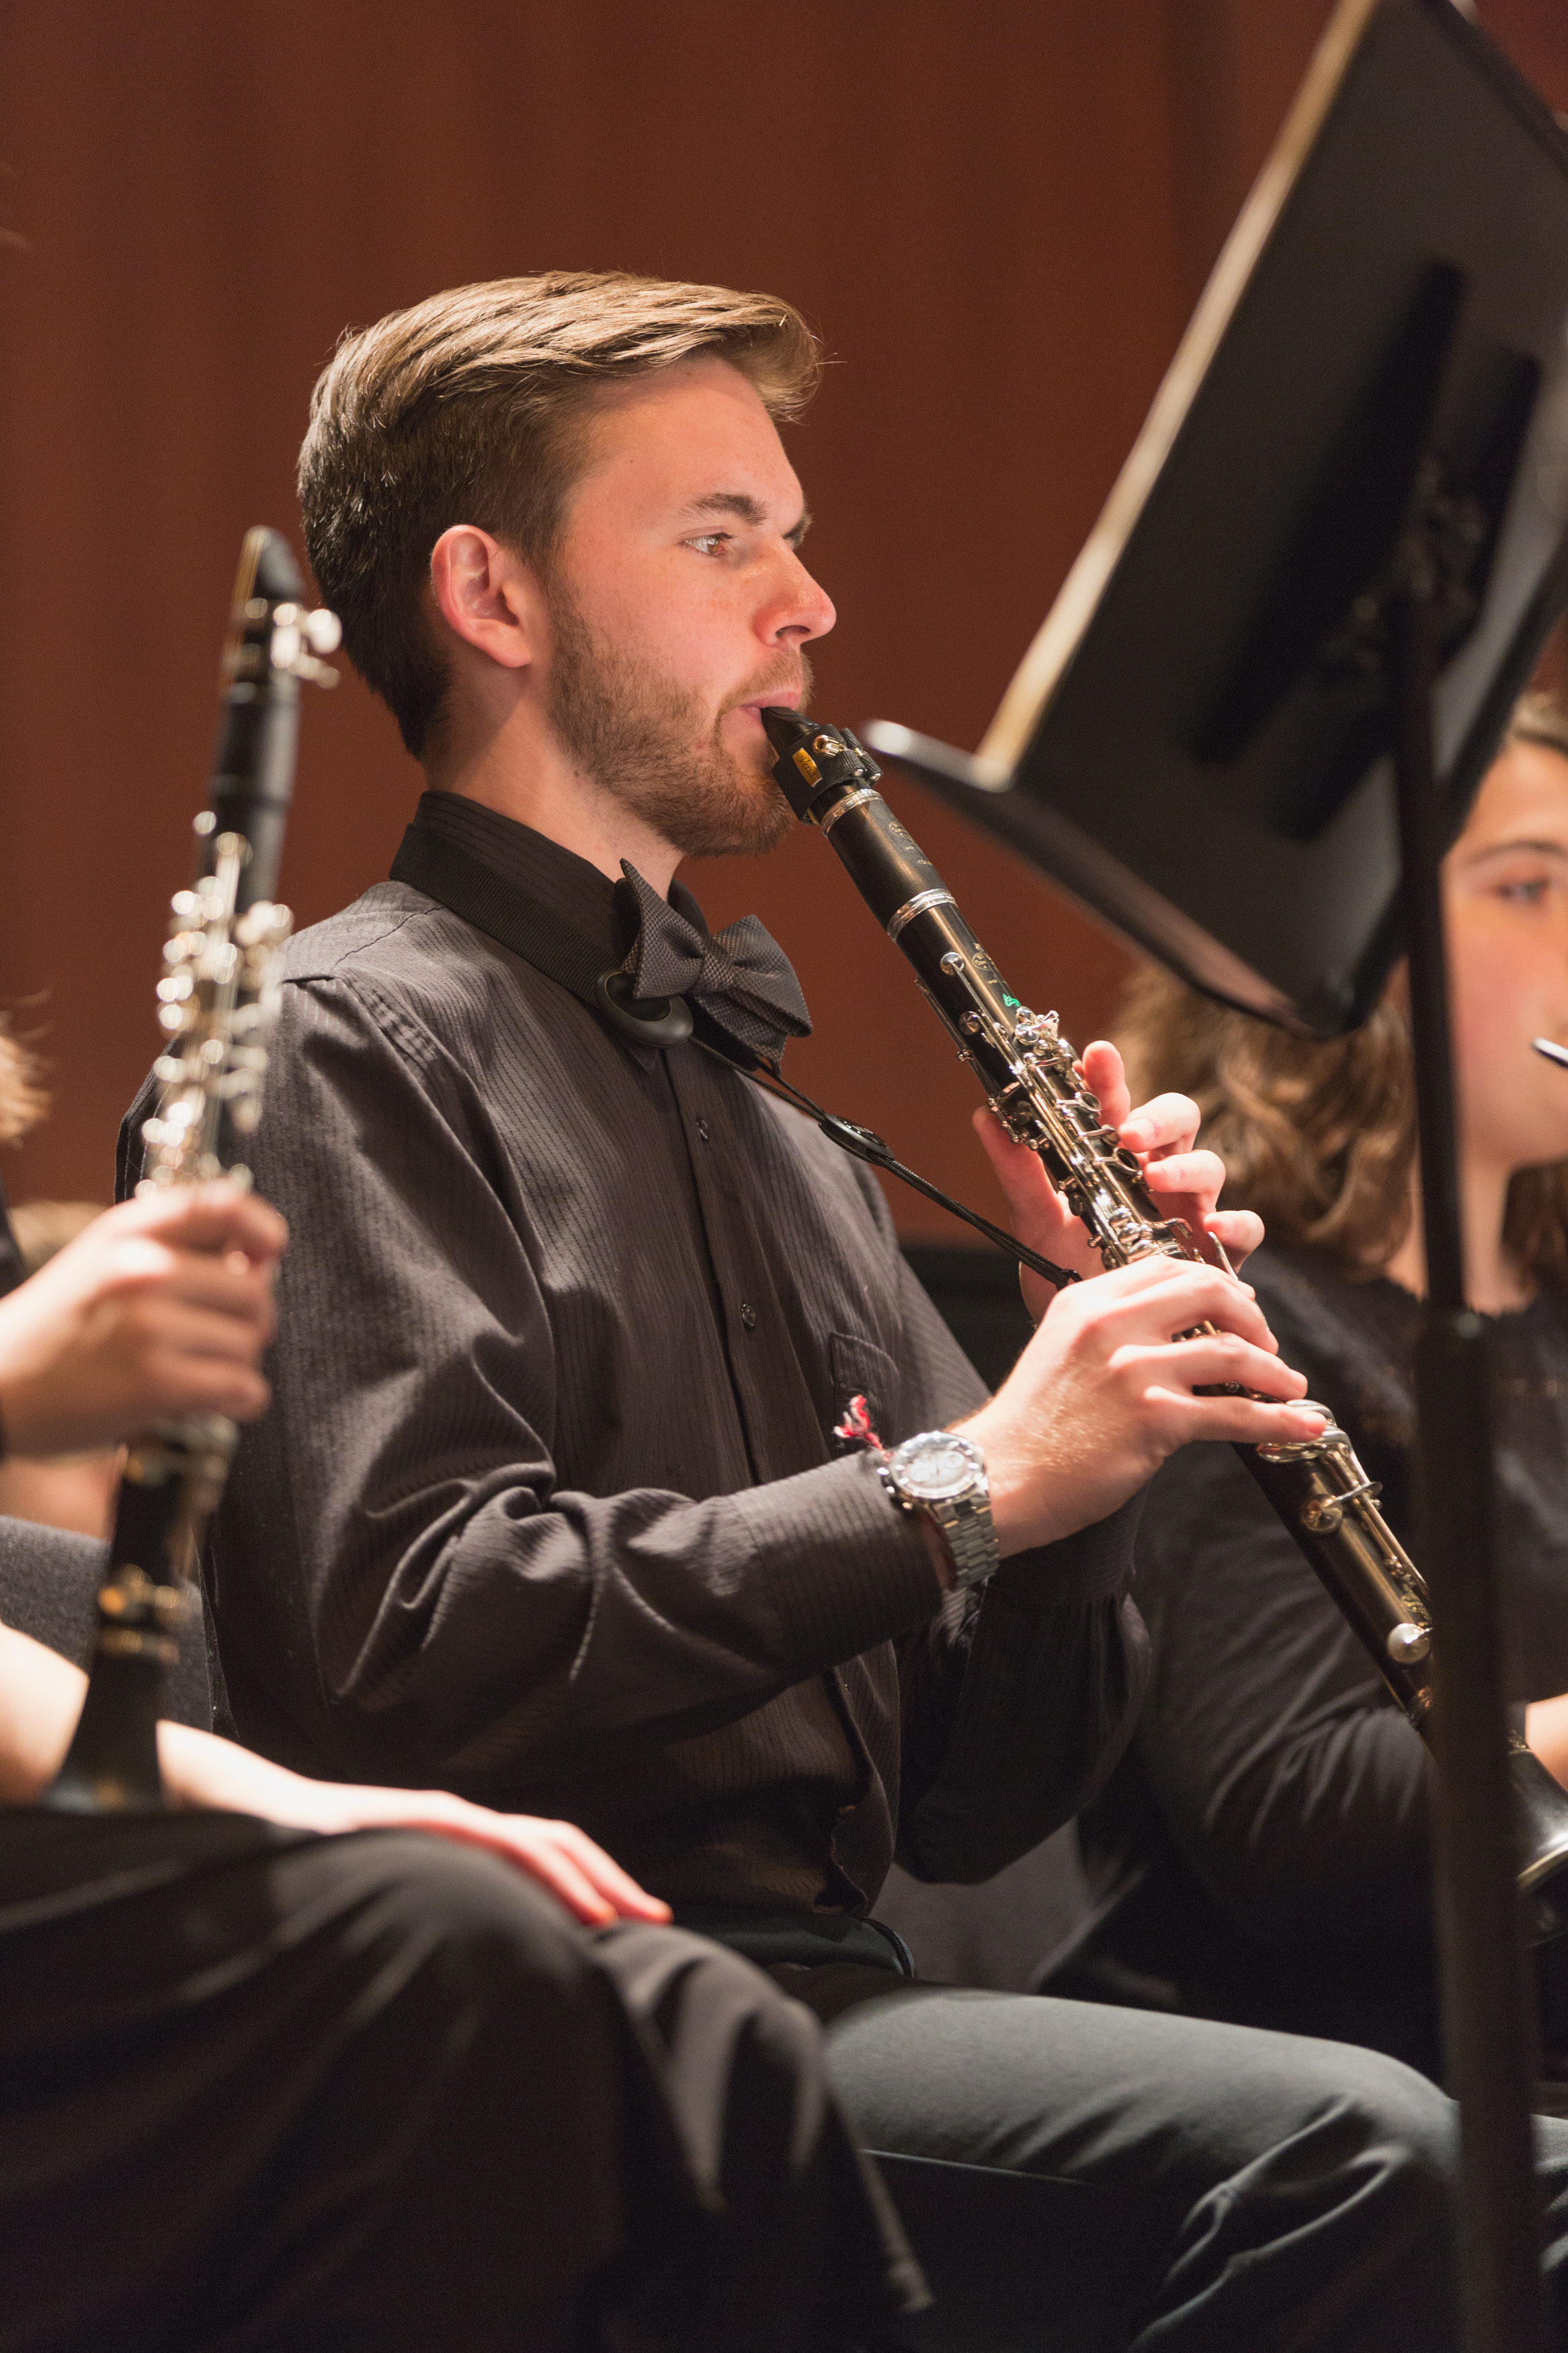 Senior clarinetist Isaac Hawkins sat down with A&E reporter Michelle Grosser to talk about his upcoming senior recital Photo courtesy of Gettysburg College